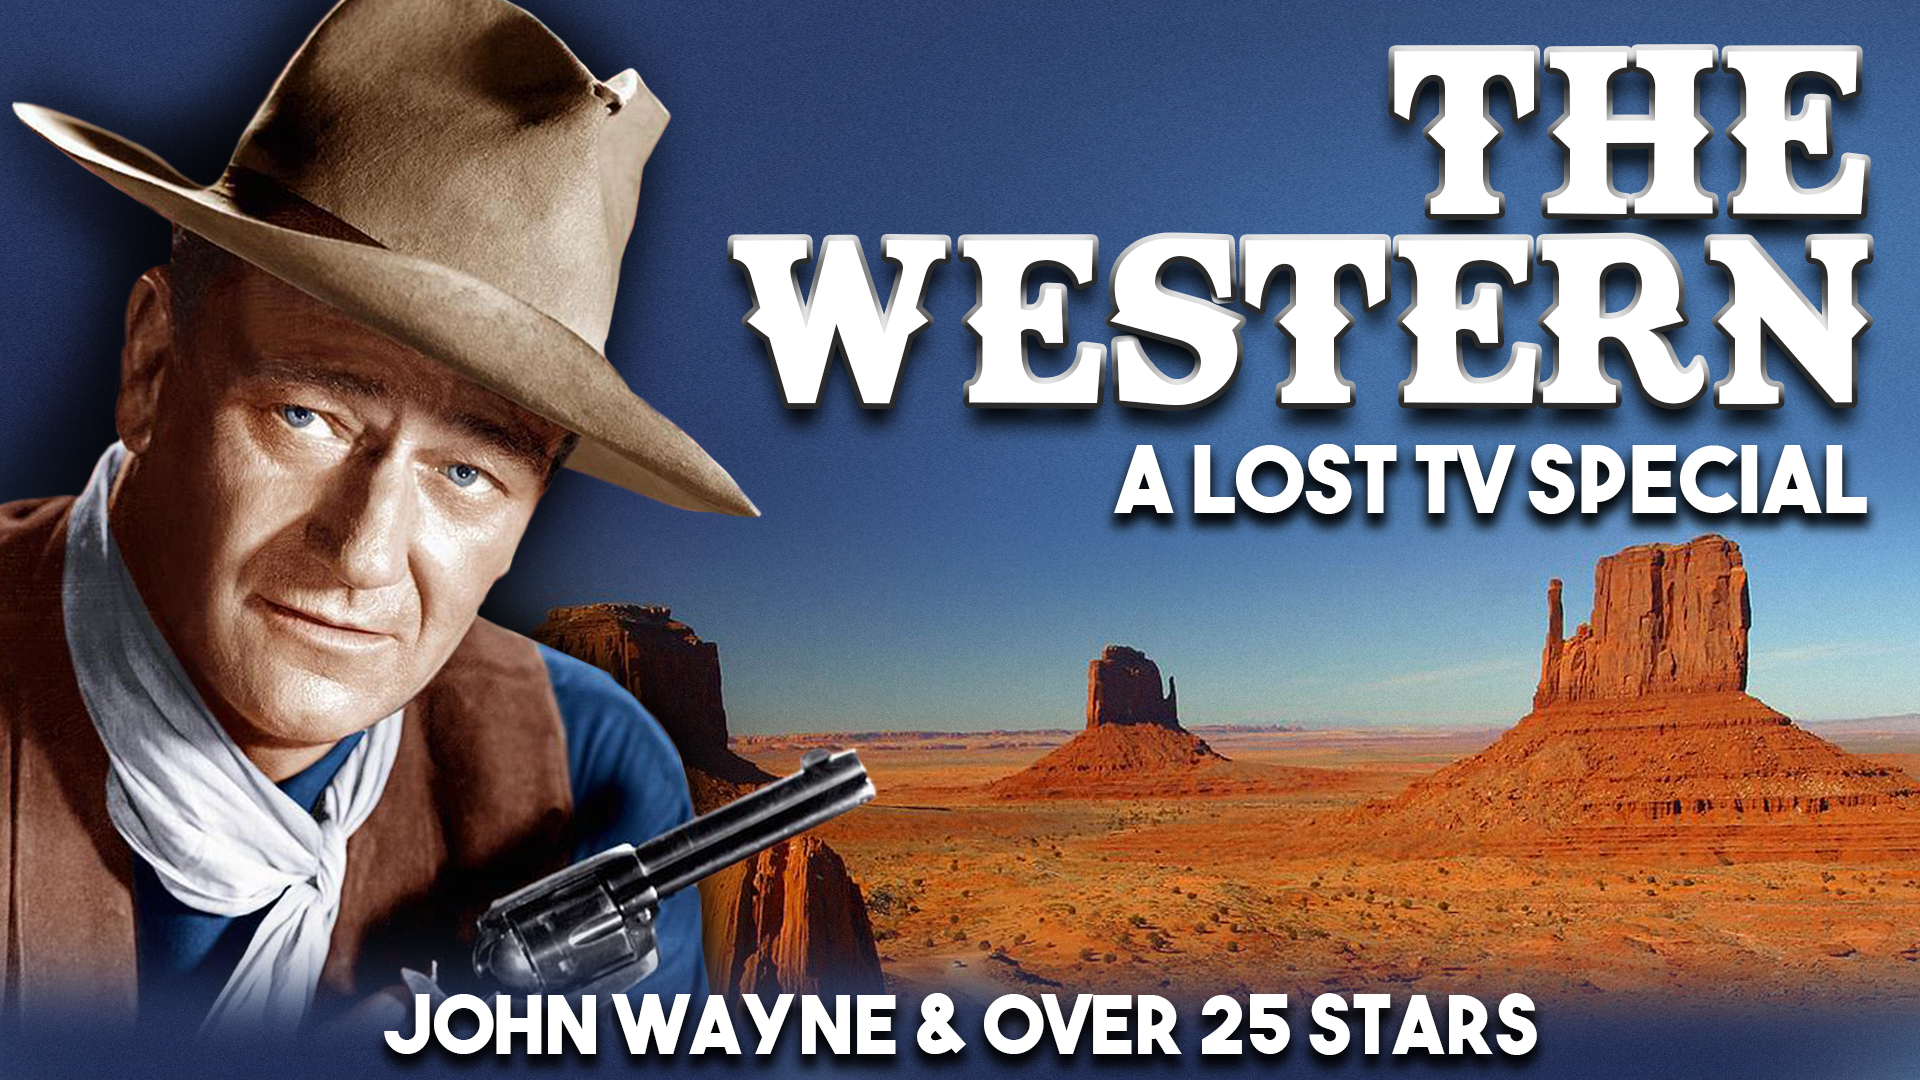 The Western - A Lost TV Special - John Wayne & Over 25 Stars